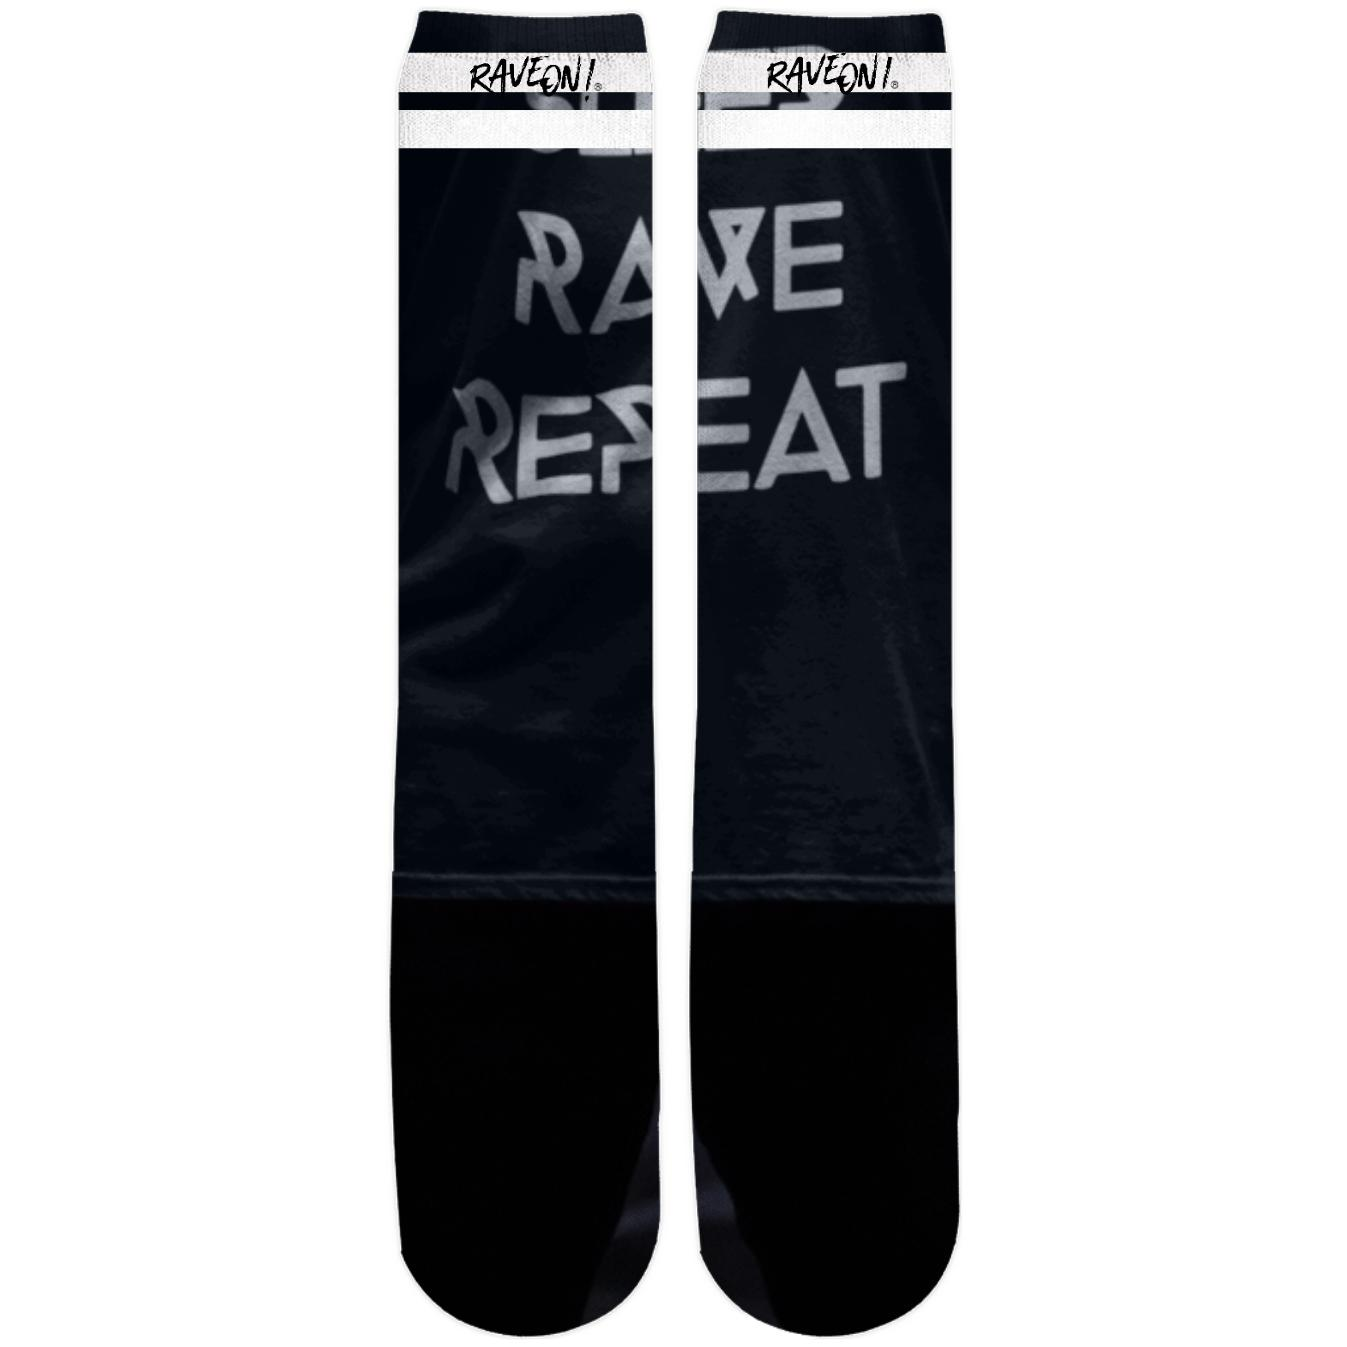 RAVE REPEAT Rave On!® Kniestrümpfe Knee-High Socks One Size - Rave On!® der Club & Techno Szene Shop für Coole Junge Mode Streetwear Style & Fashion Outfits + Sexy Festival 420 Stuff